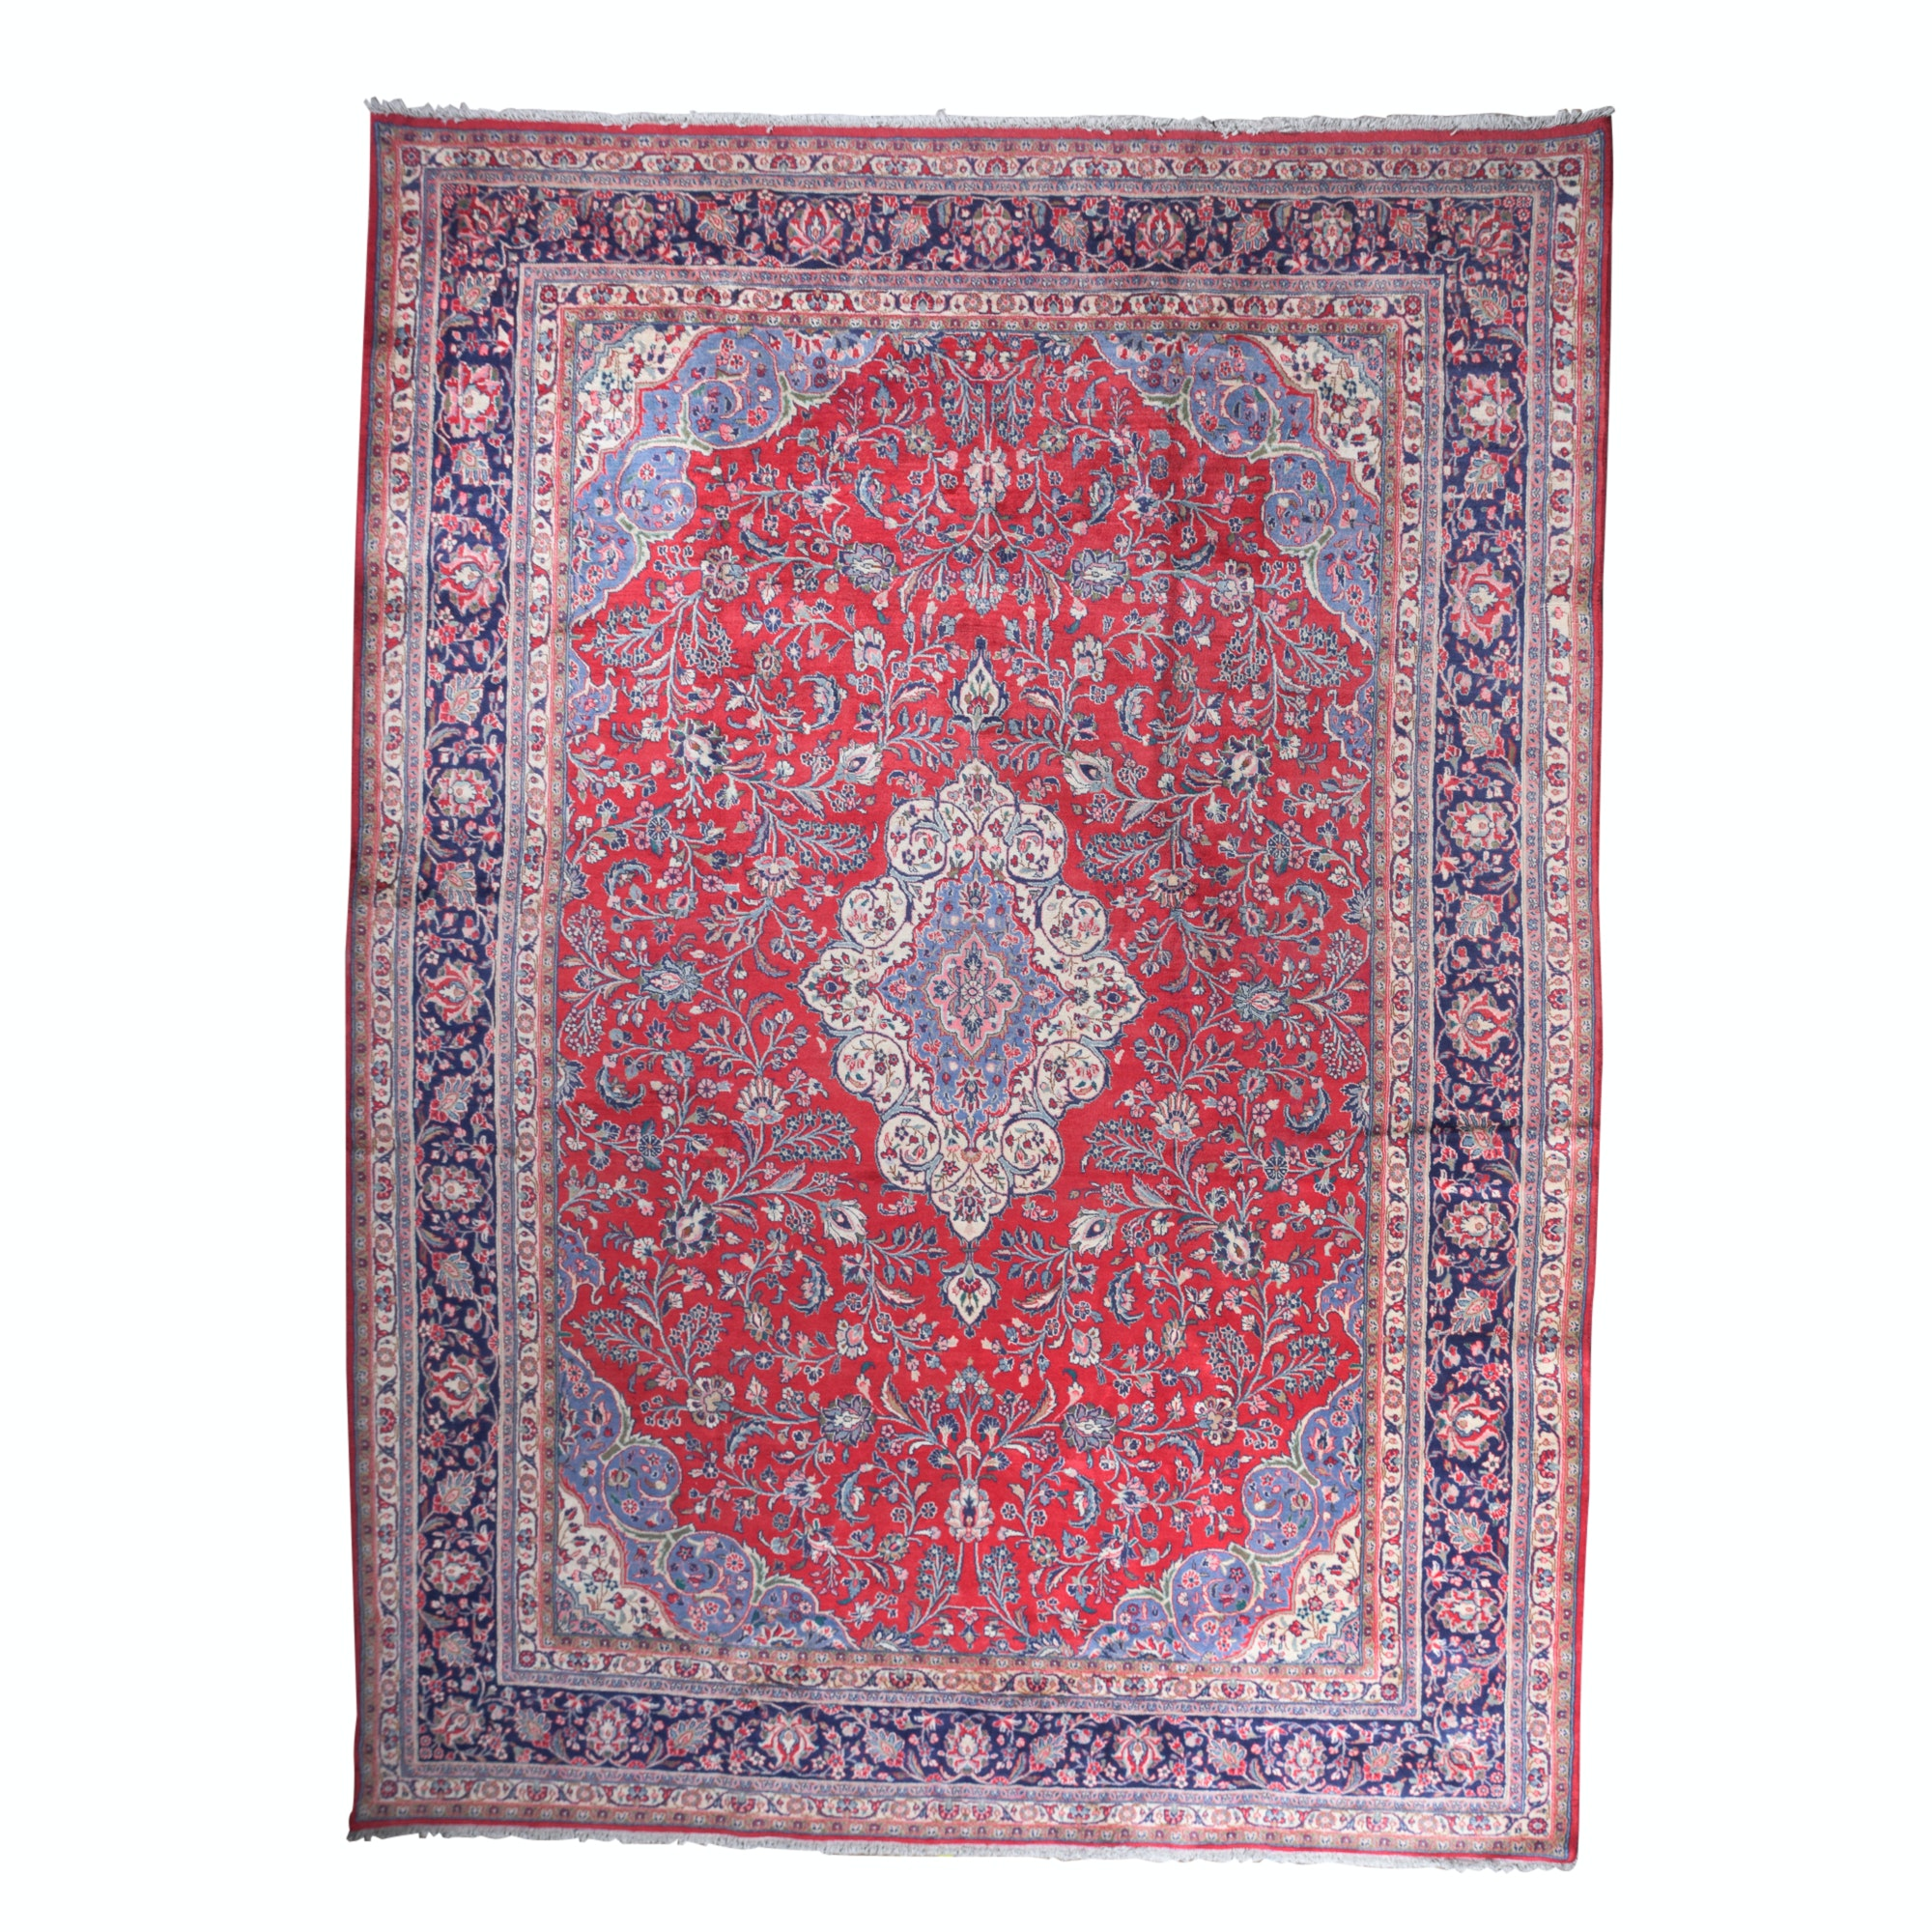 Hand-Knotted Indo-Kashan Wool Room Sized Rug